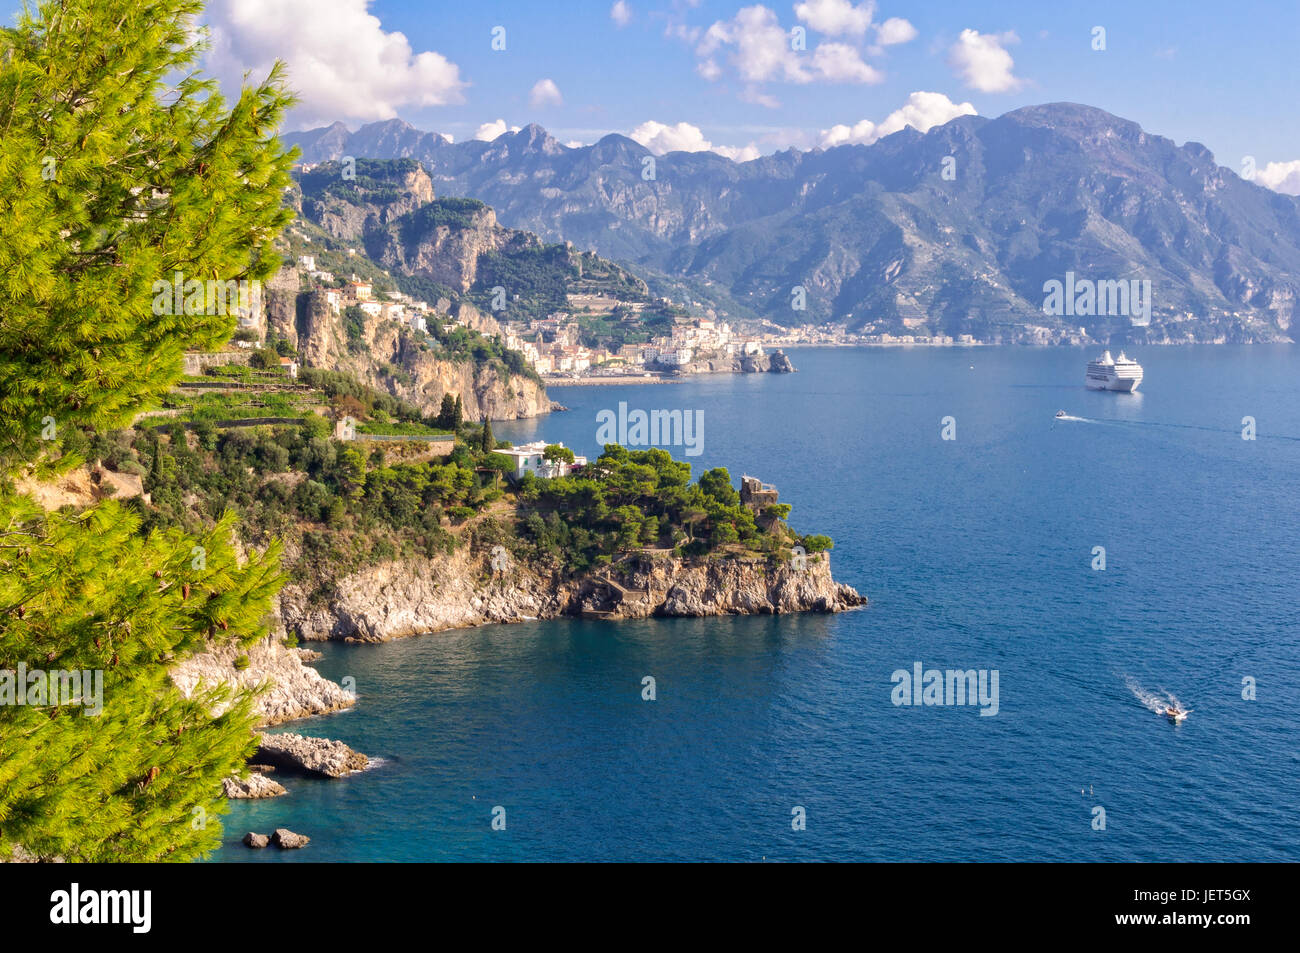 Cruise ship along the Amalfi Coast between Conca dei Marini and Positano - Campania, Italy - Stock Image